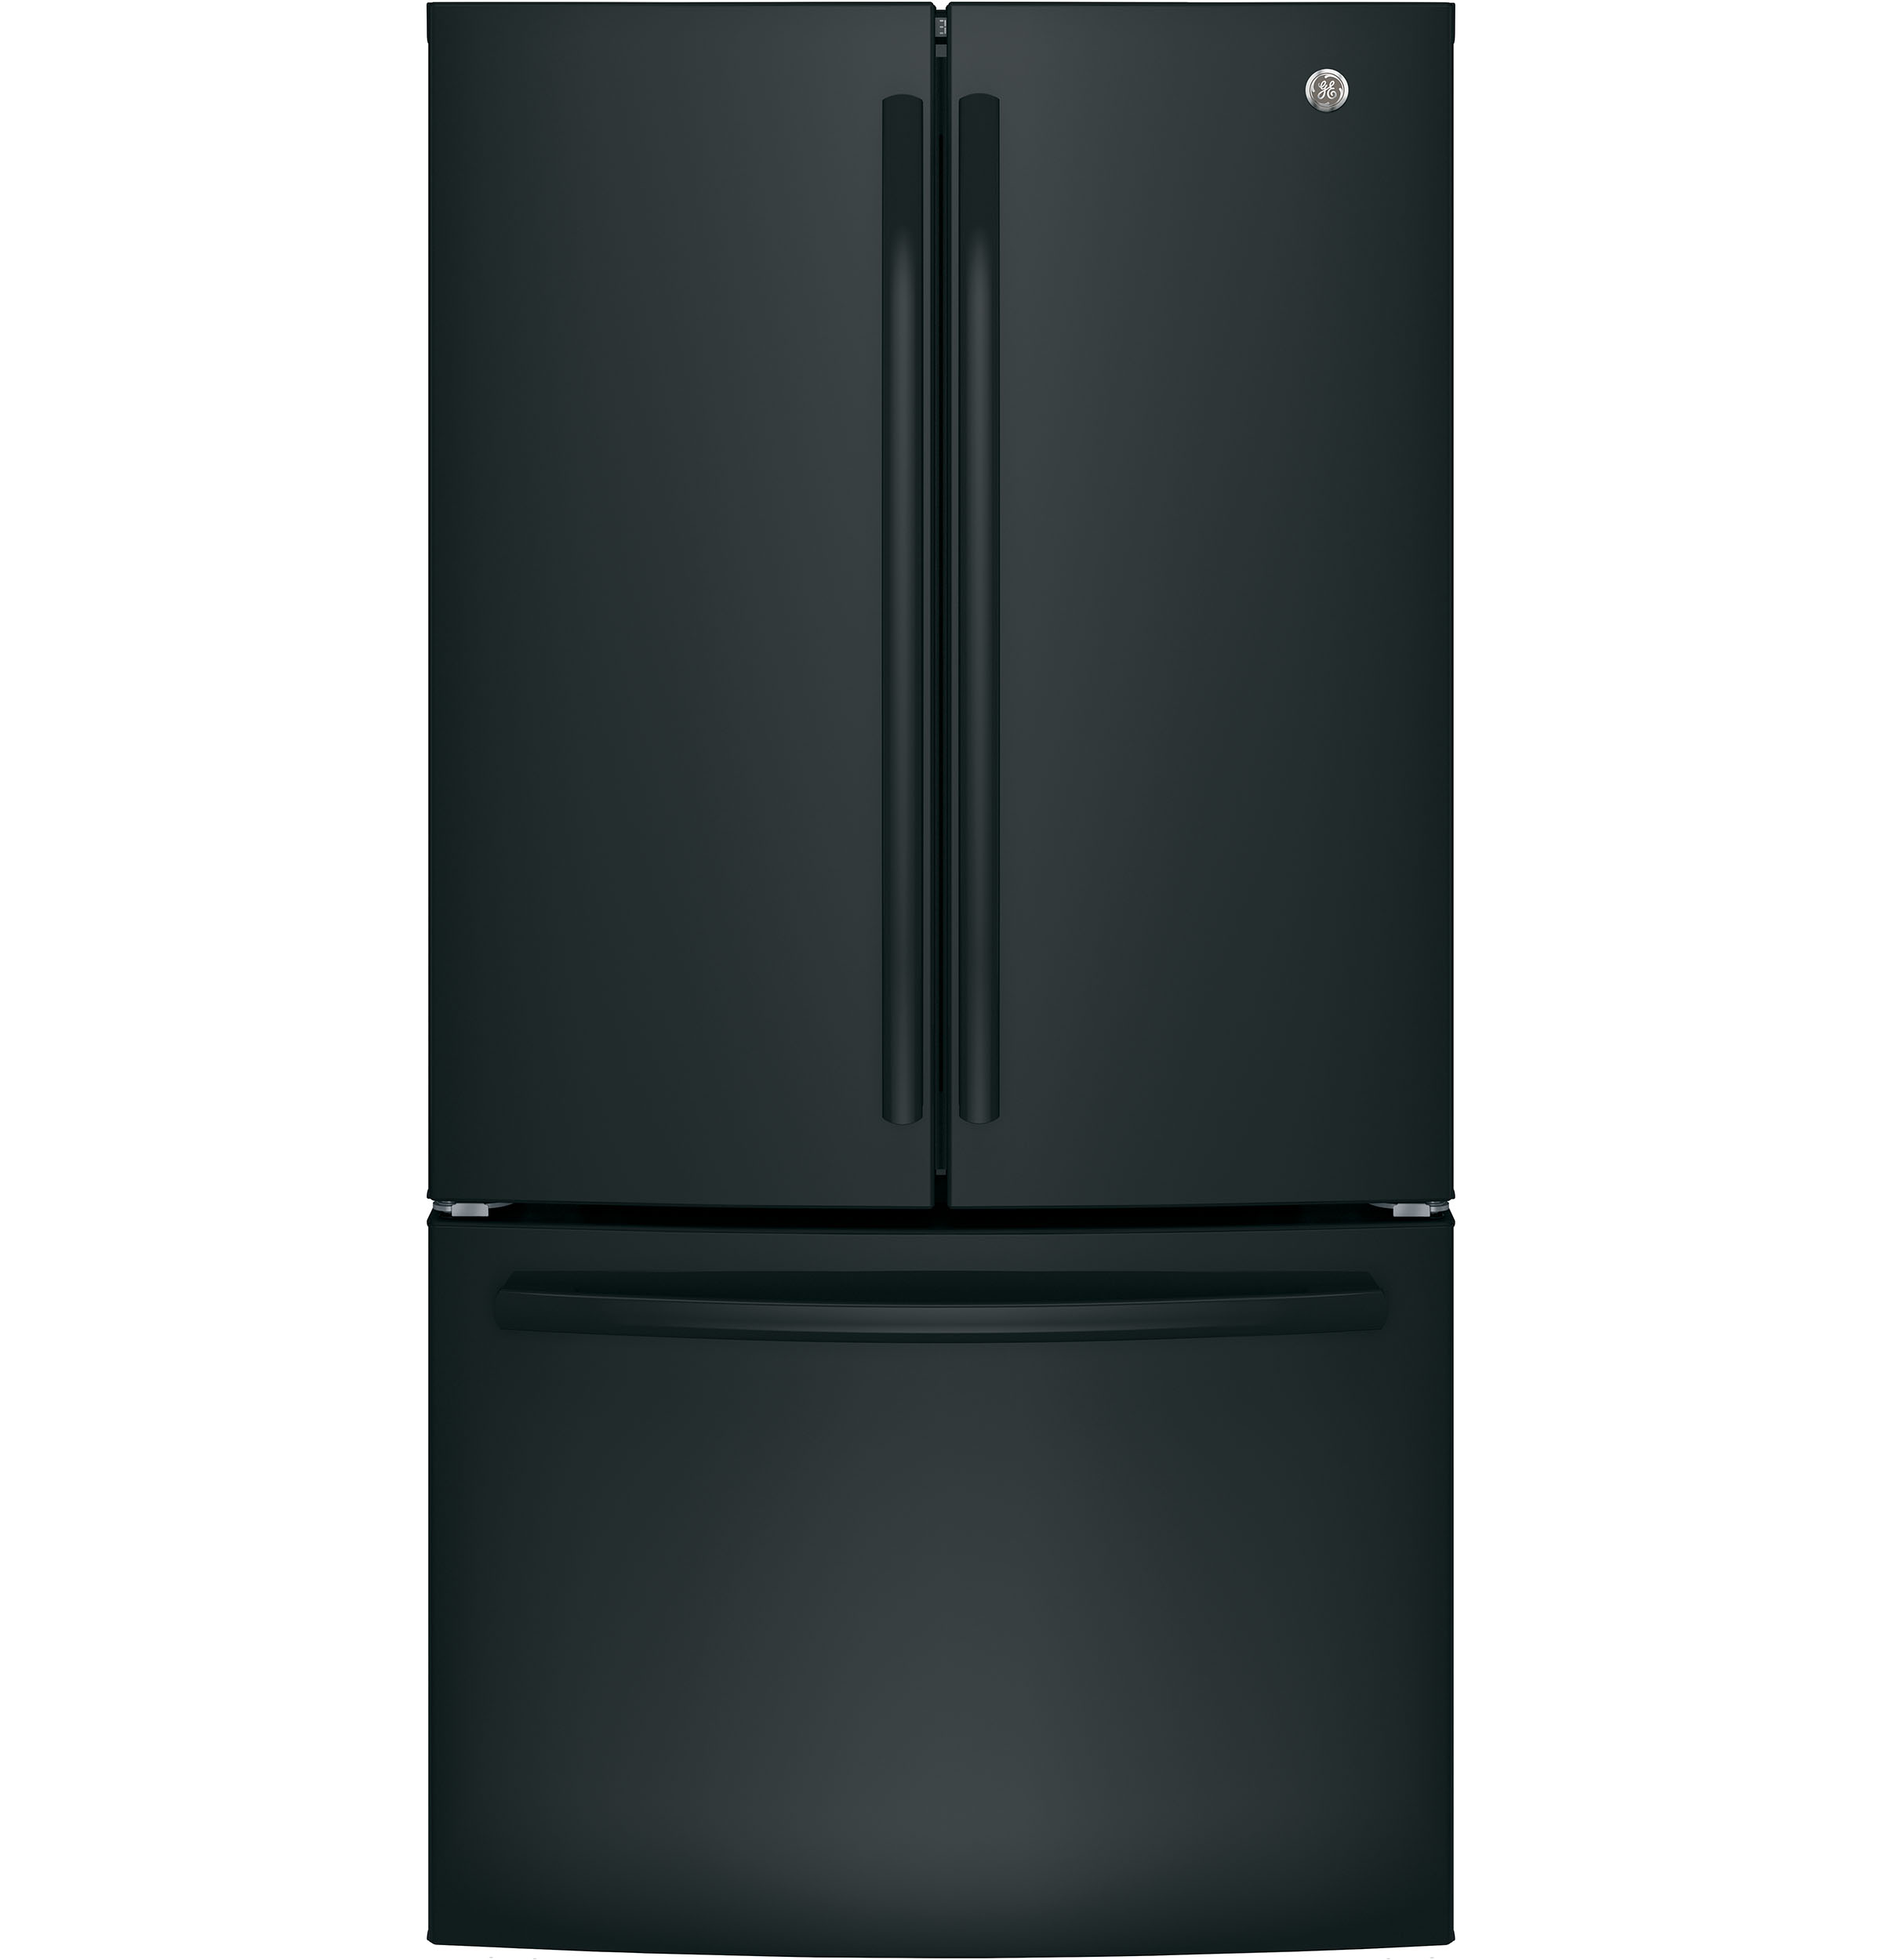 GE GE® ENERGY STAR® 27.0 Cu. Ft. French-Door Refrigerator